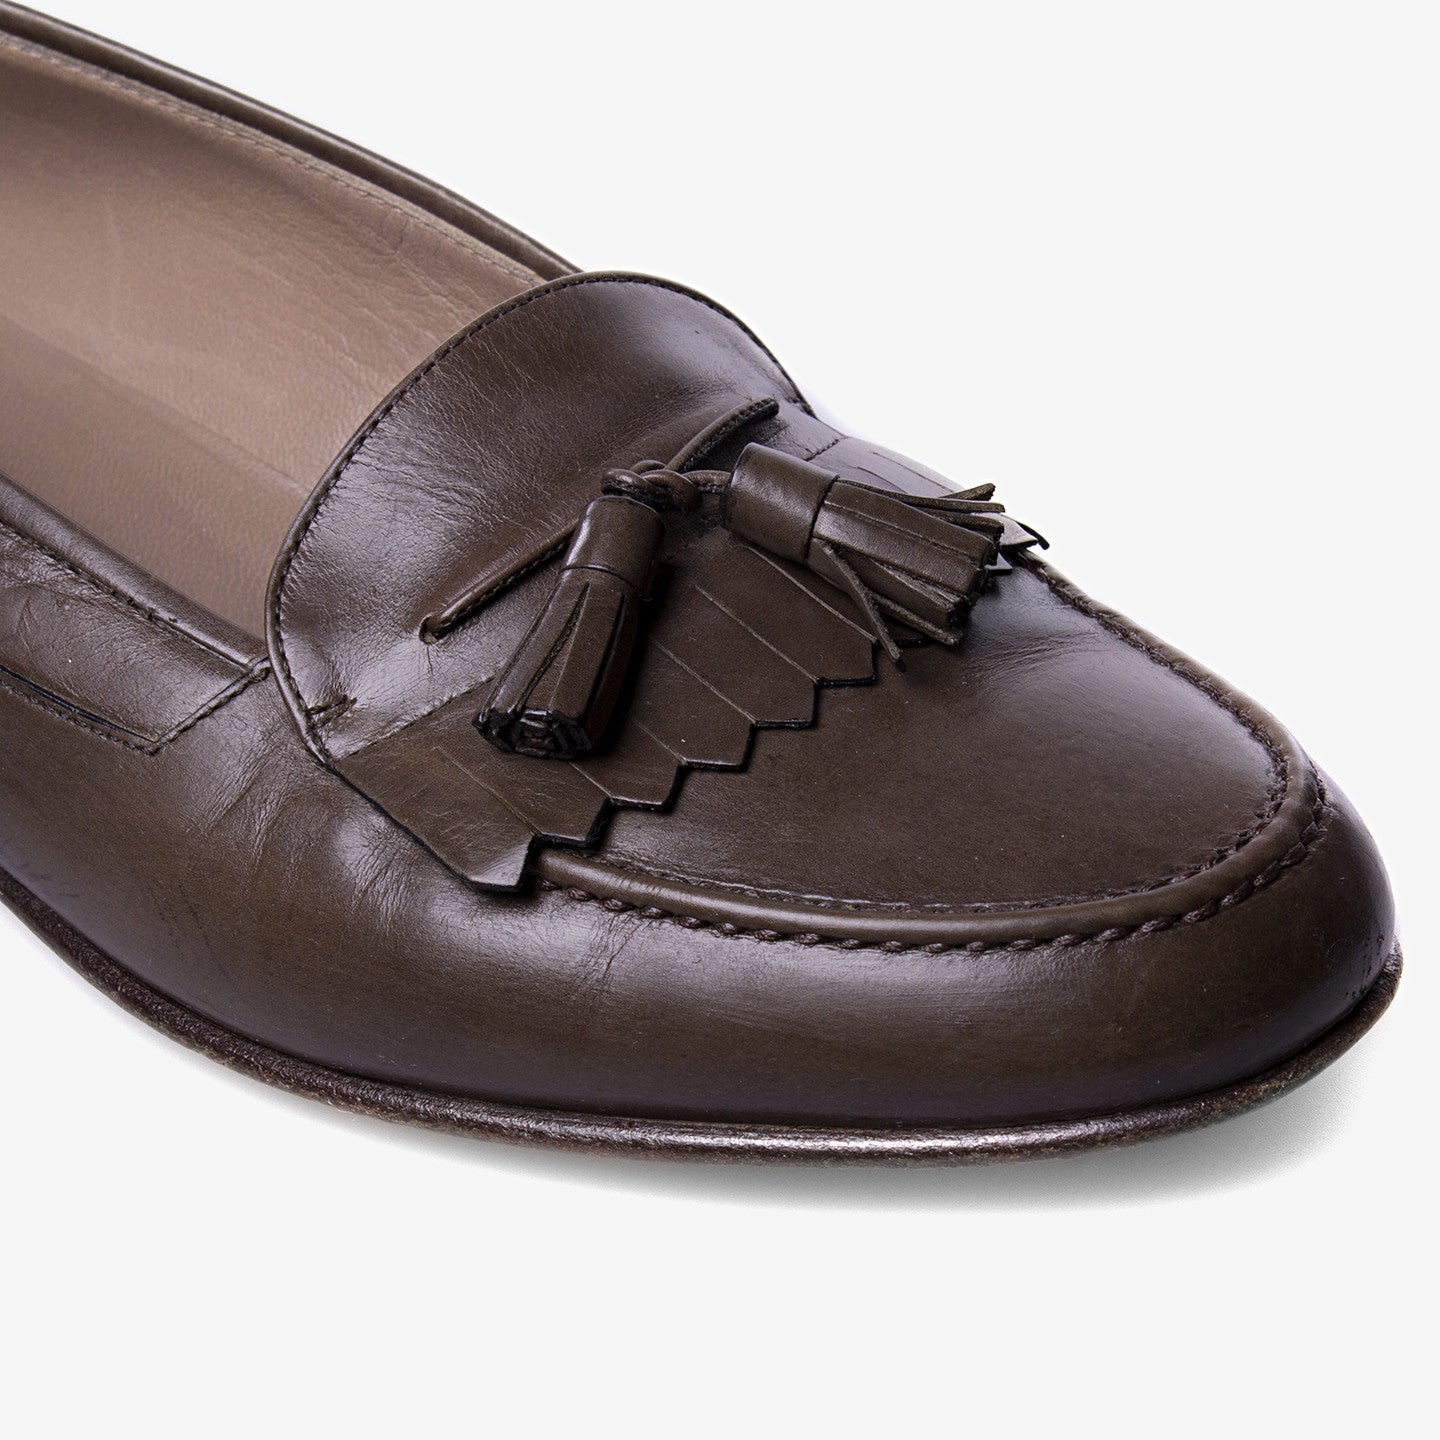 Bally / Brown Leather Kiltie Tassel Loafers